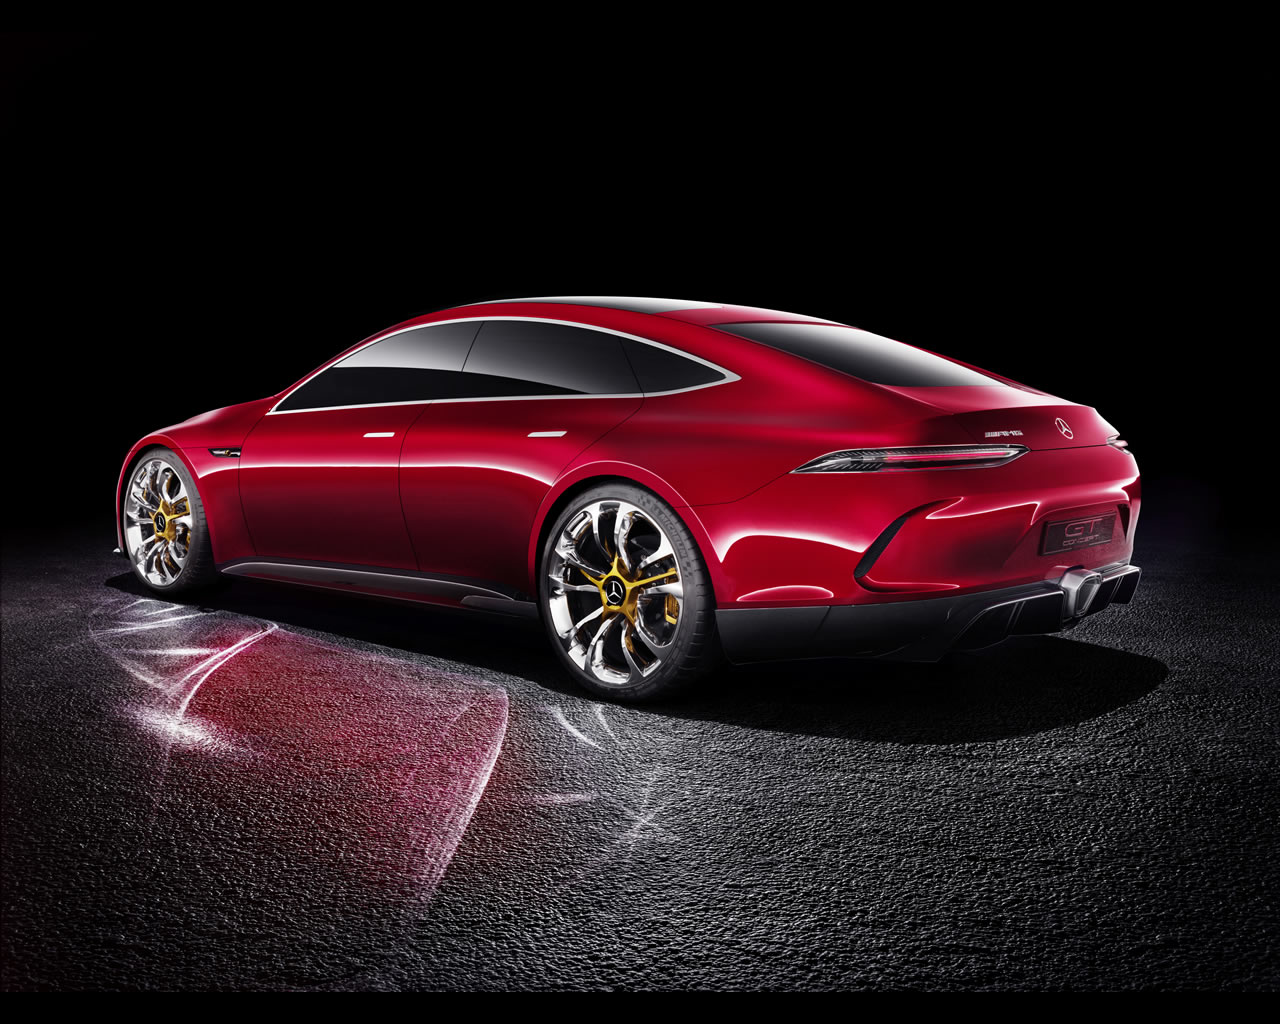 Mercedes benz amg gt hybrid concept 2017 for Mercedes benz hybrid cars